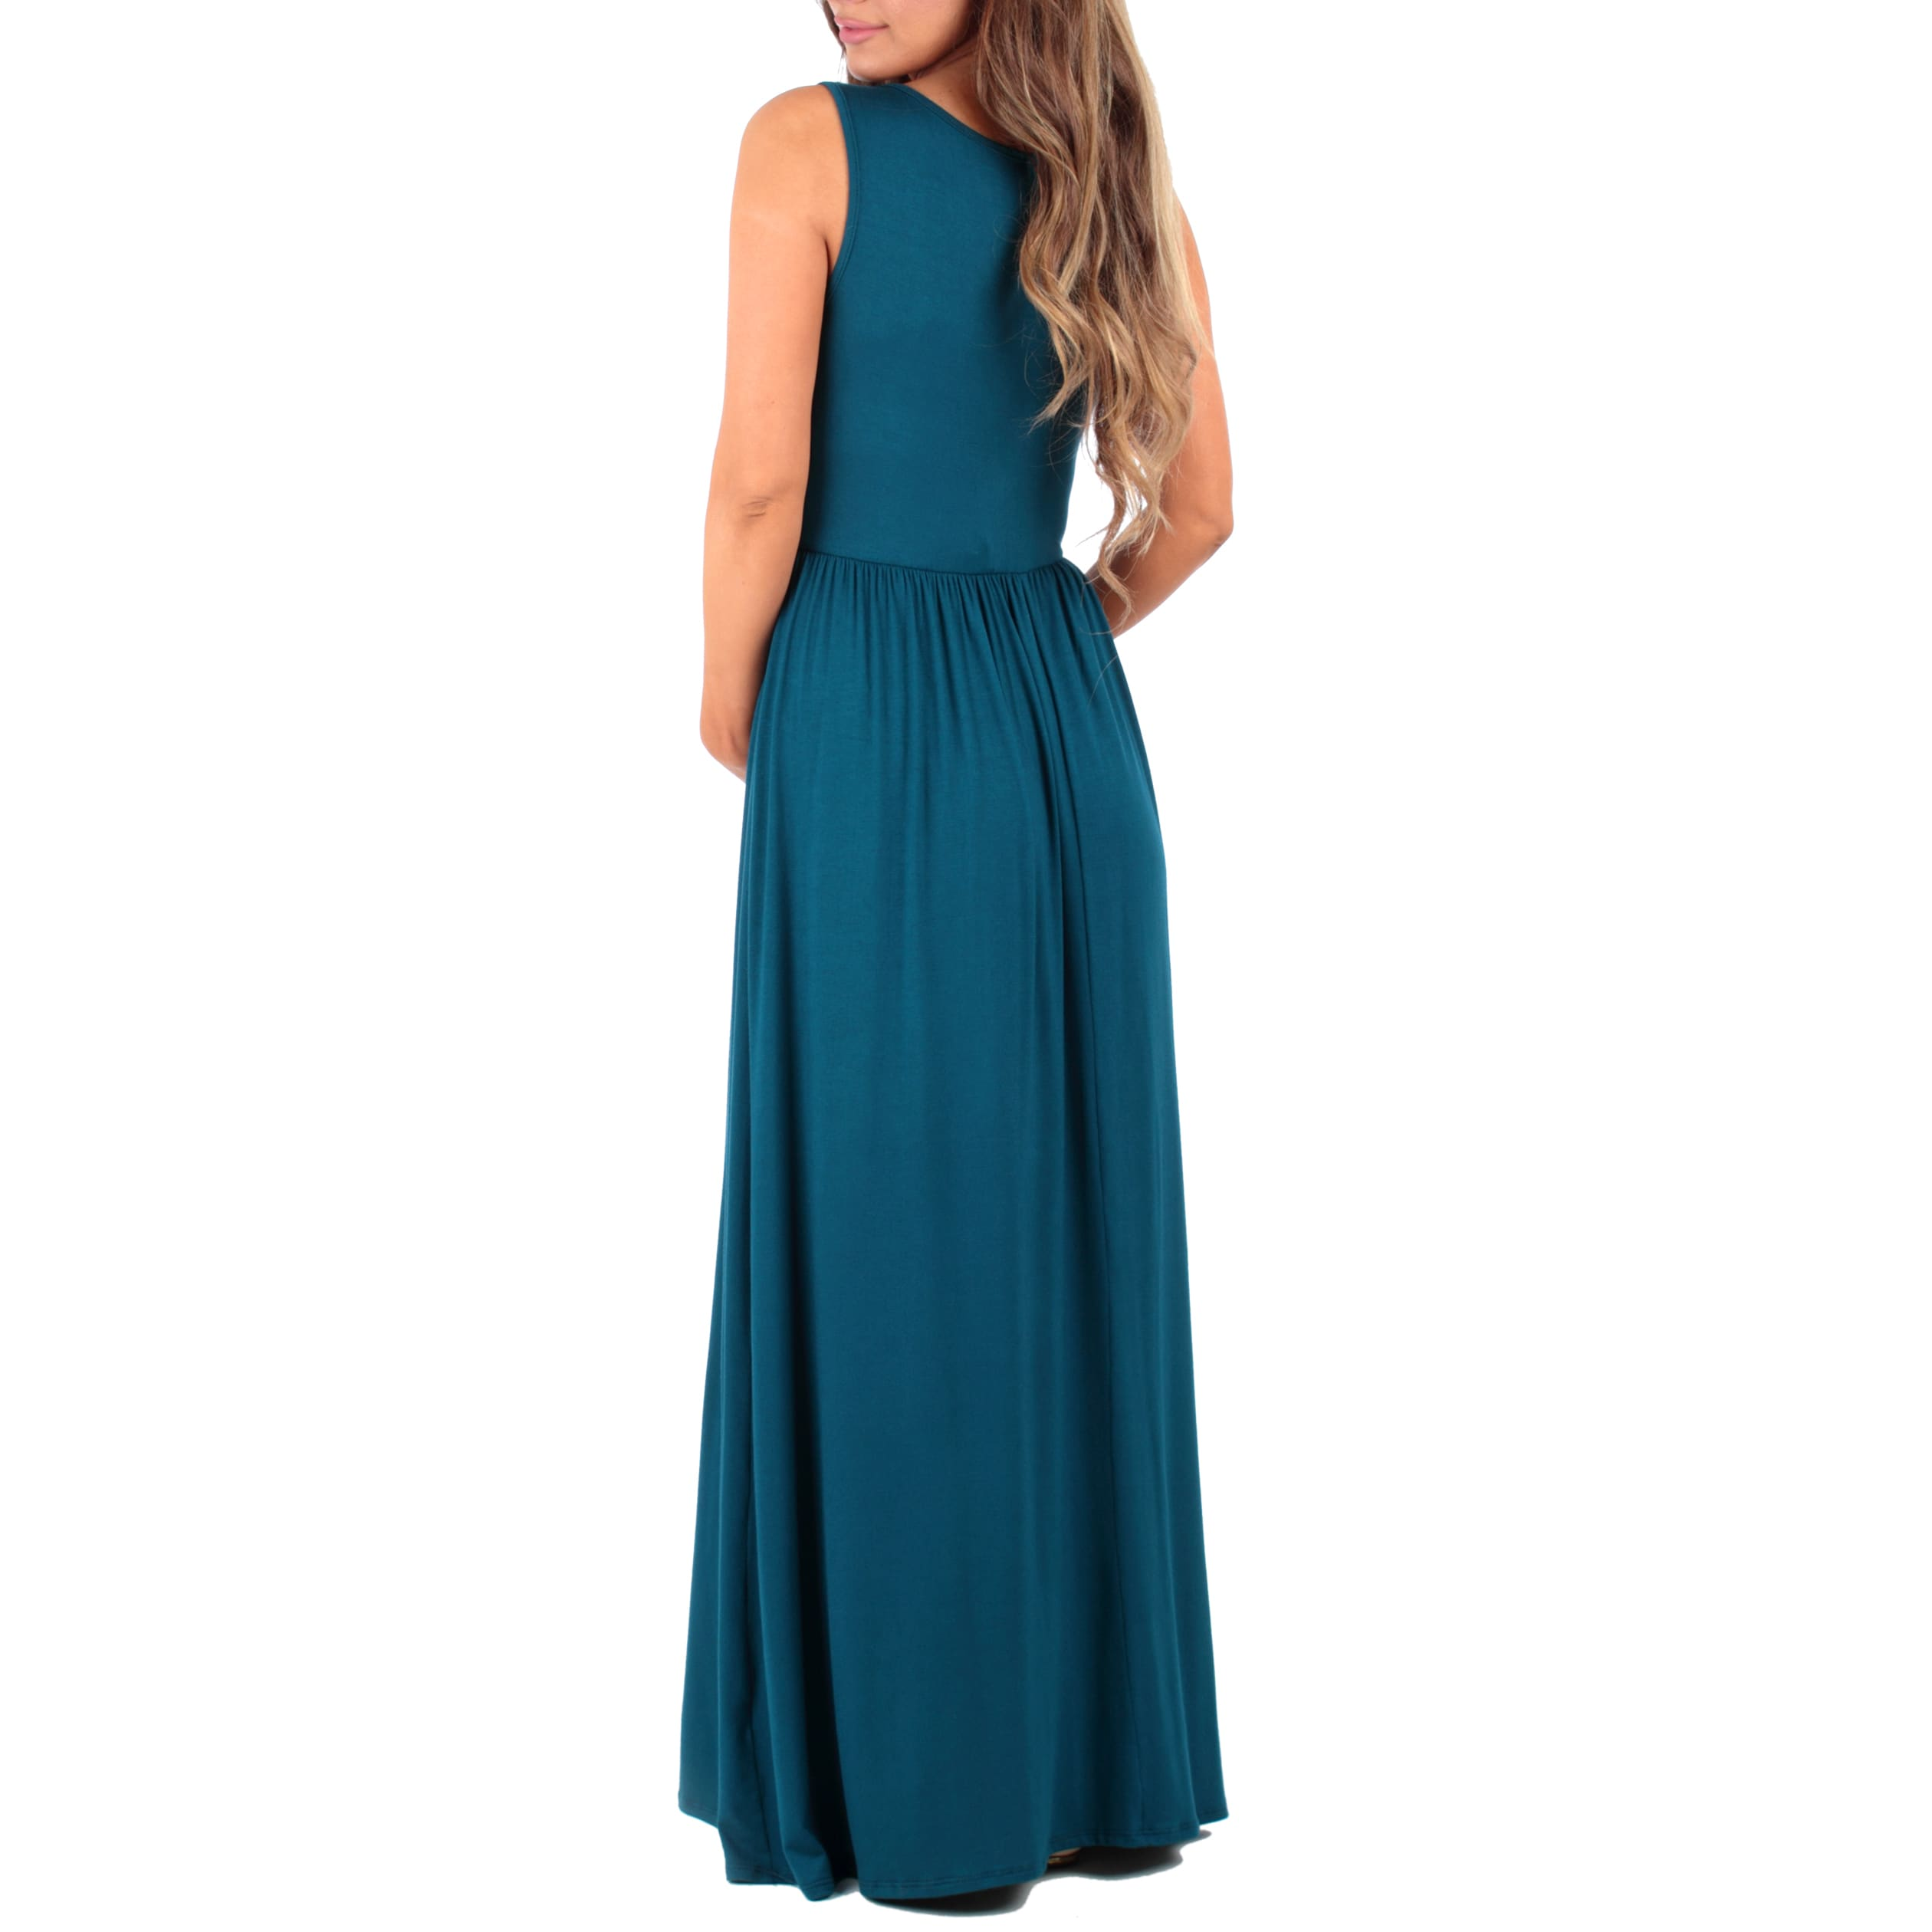 c29fd47979e0f Shop Mother Bee Women's Ruched Sleeveless Maternity Dress - Free Shipping  On Orders Over $45 - Overstock - 14770922